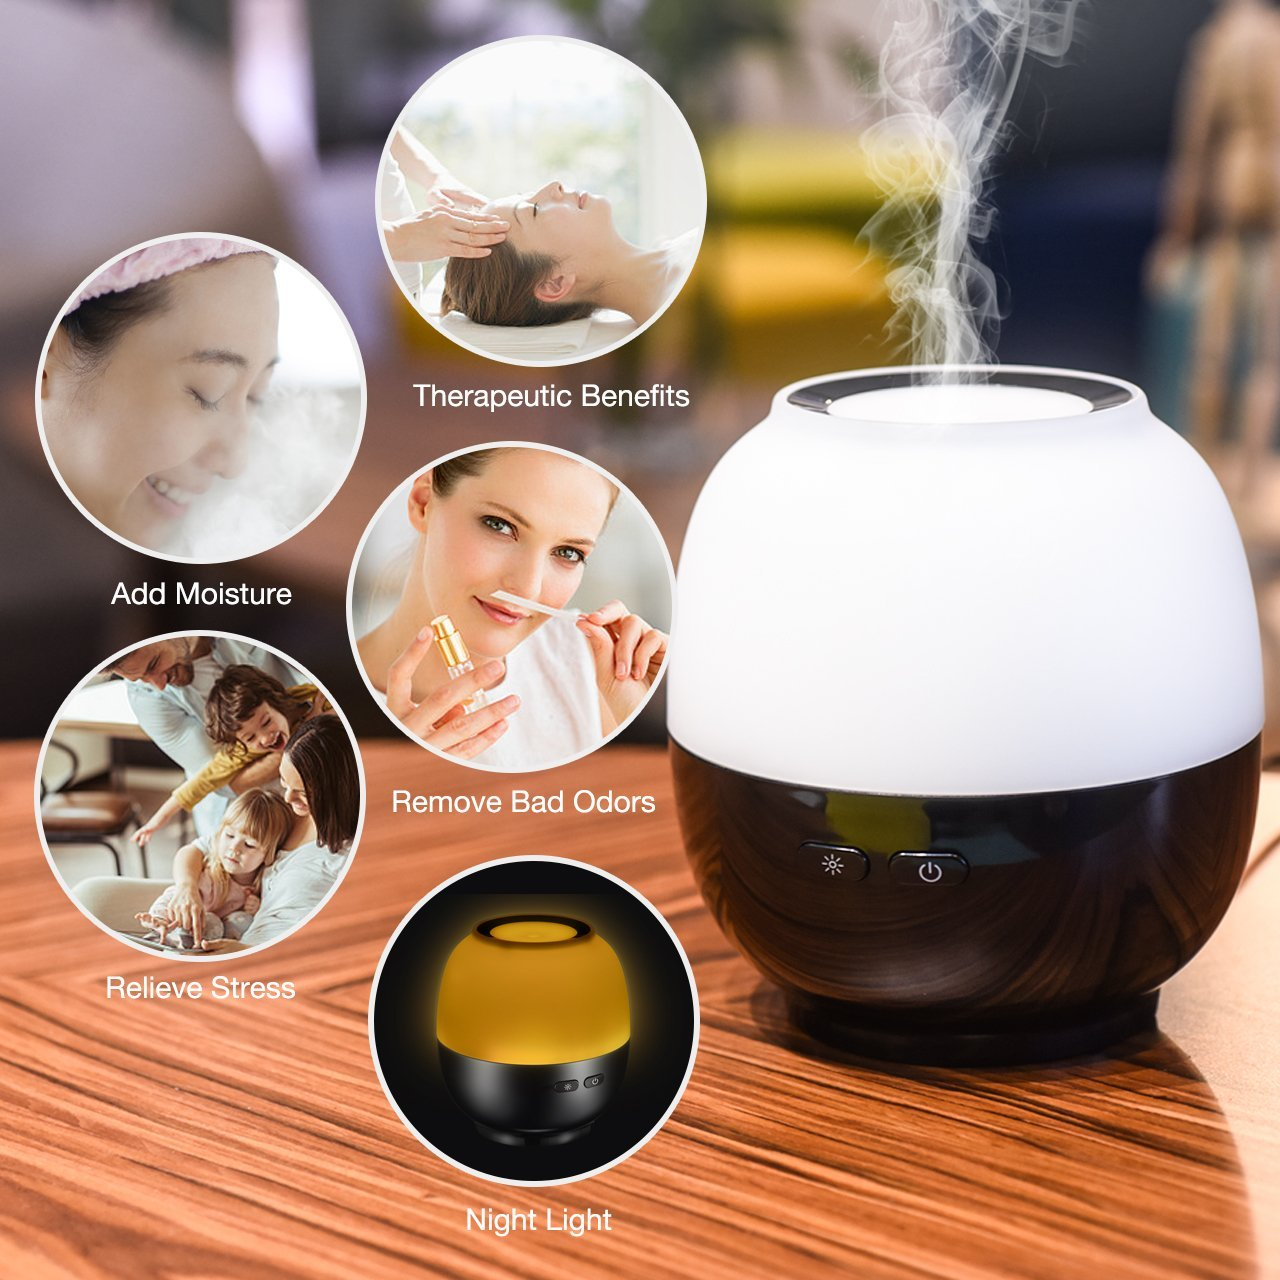 VicTsing Essential Oil Diffuser, 140ml Aroma Essential Oil Diffuser with 7-Color LED Light, Waterless Auto-Off Function, Whisper-Quiet Operation, Suits for Home, Yoga, Office, Spa, Bedroom, Baby Room 5